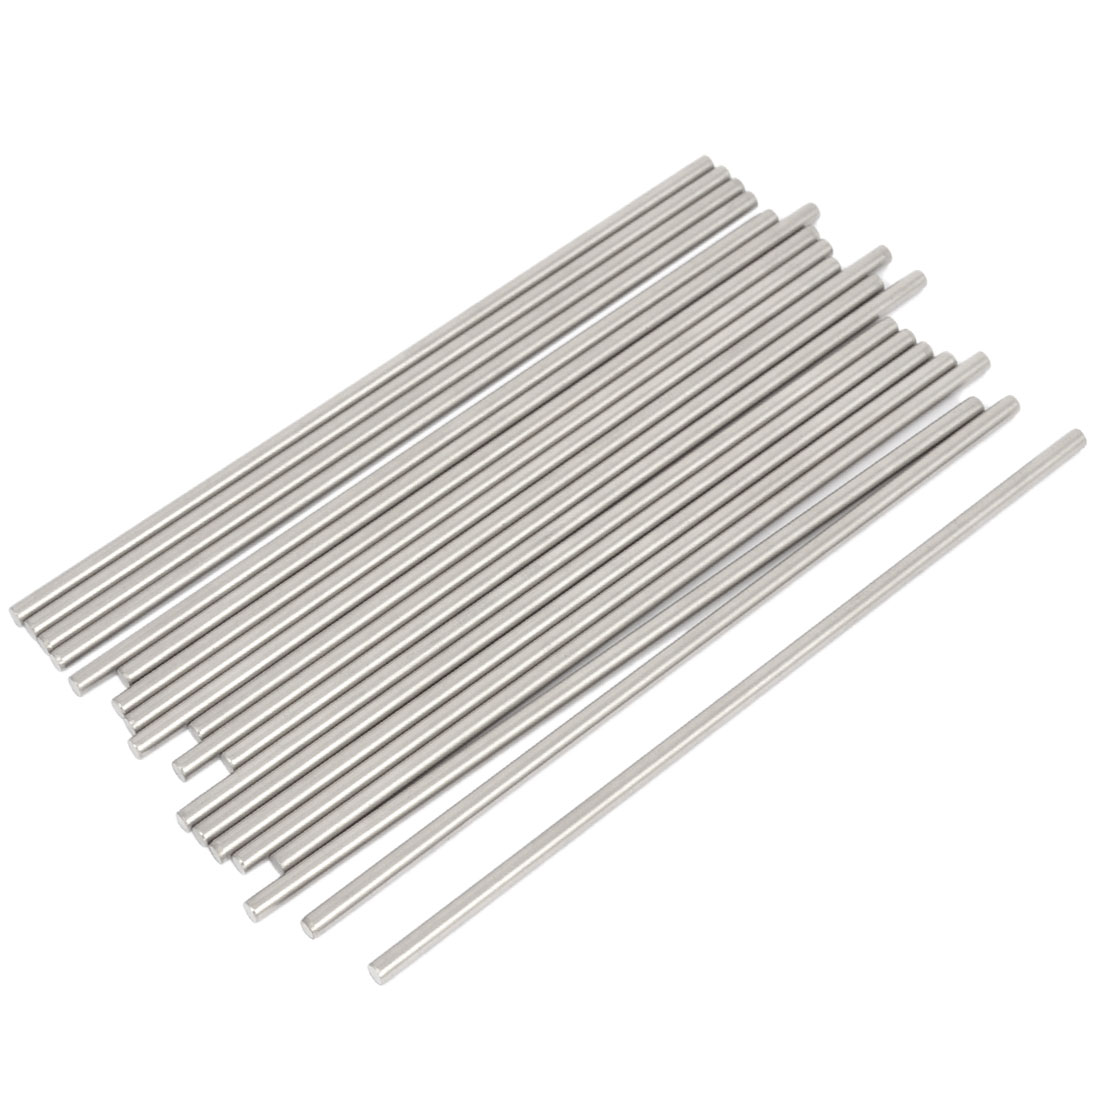 20 Pcs RC Airplane Model Part Stainless Steel Round Rods Axles Bars 3mm x 110mm